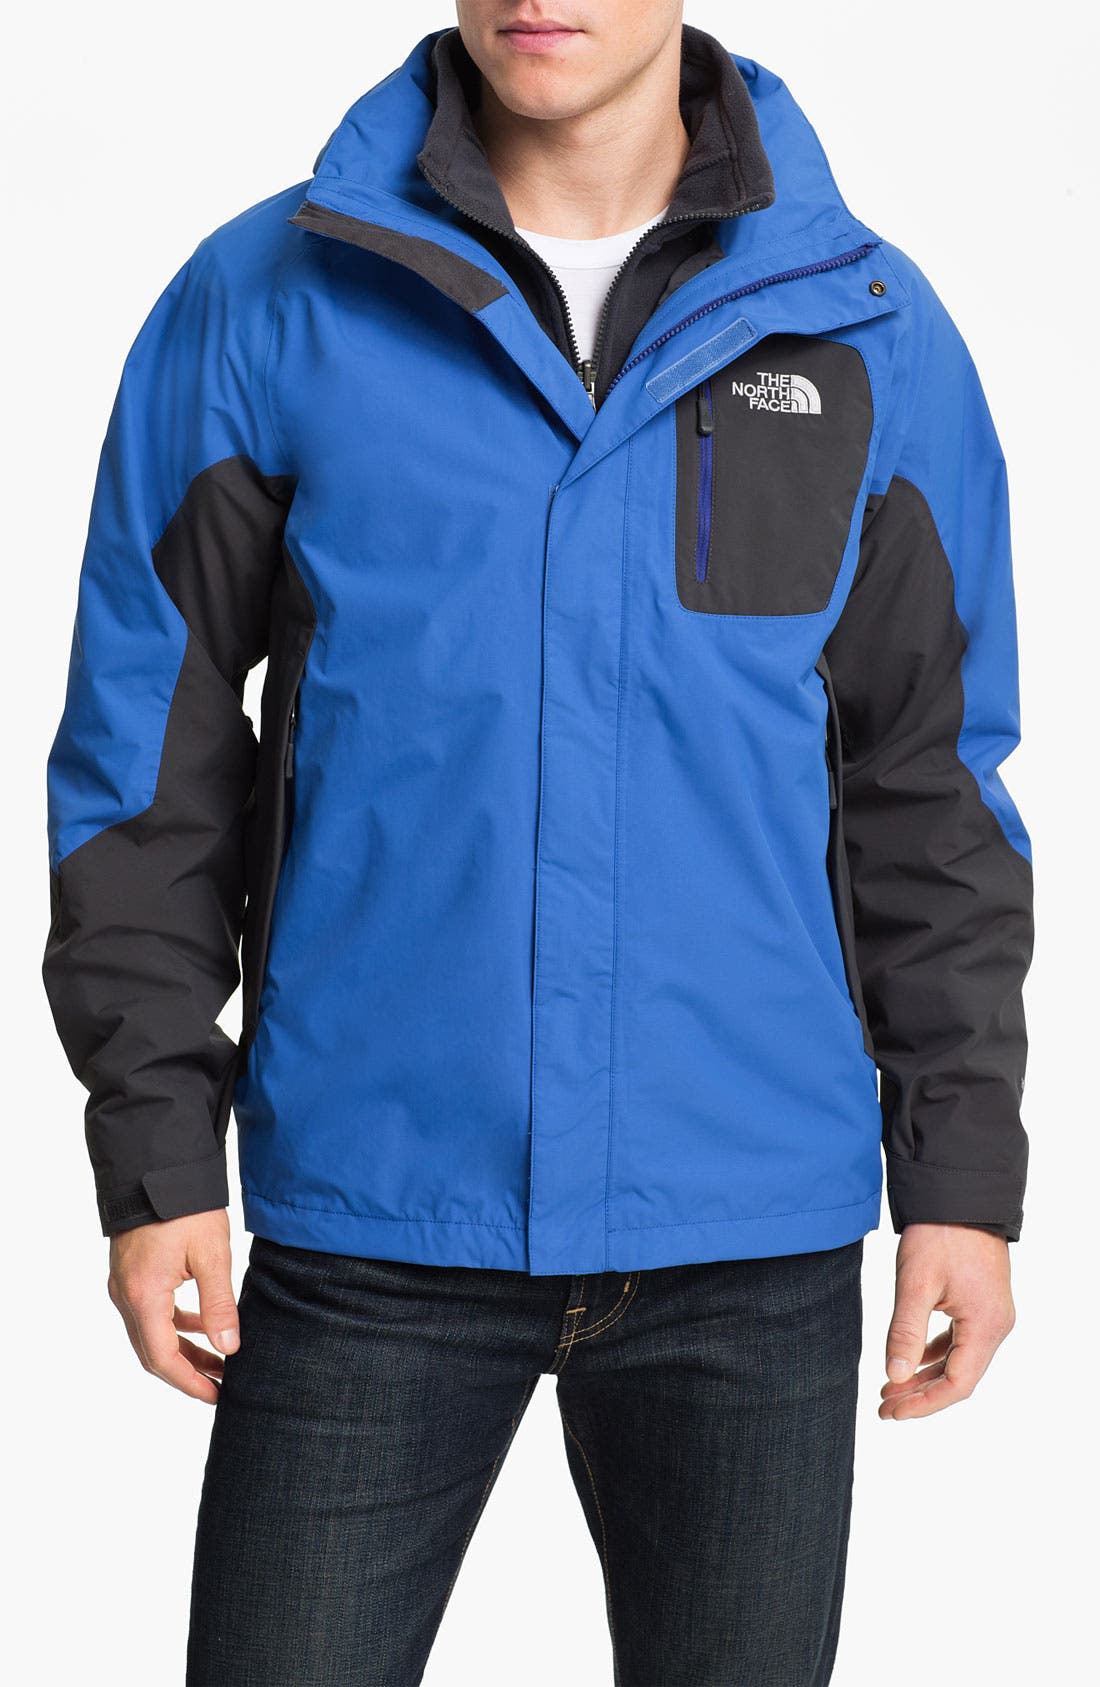 Main Image - The North Face 'Atlas' TriClimate® 3-in-1 Jacket